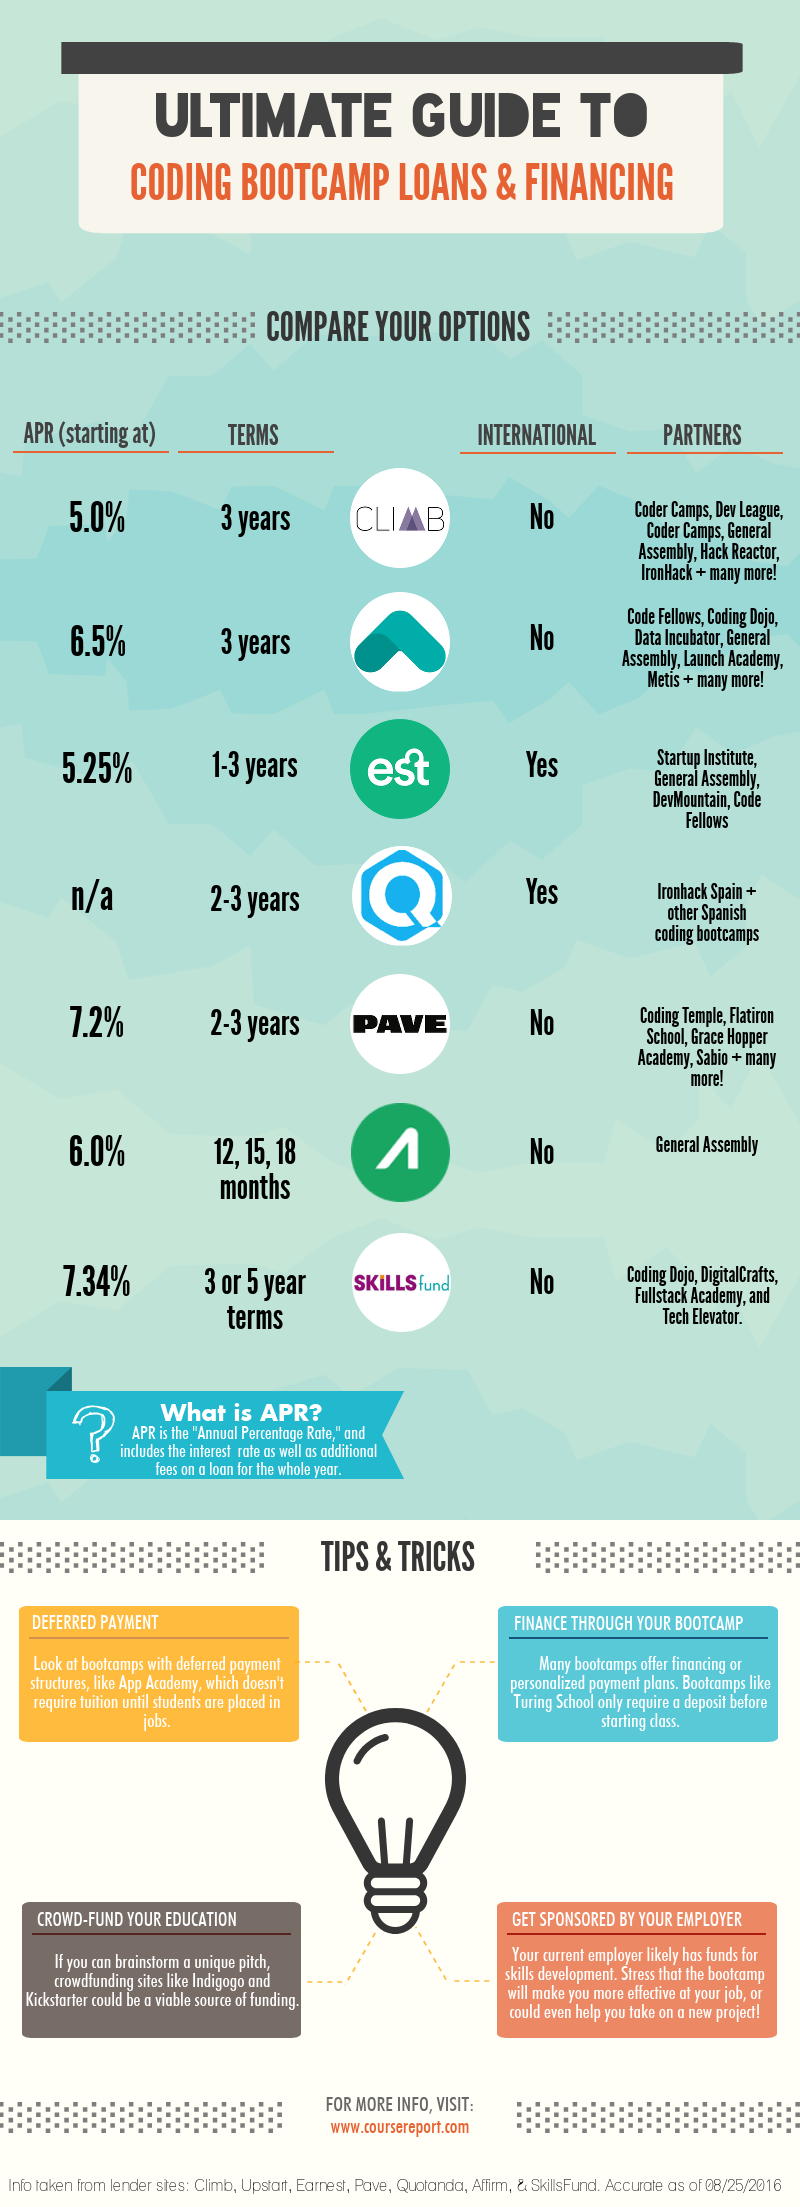 ultimate guide to coding bootcamp loans and financing infographic